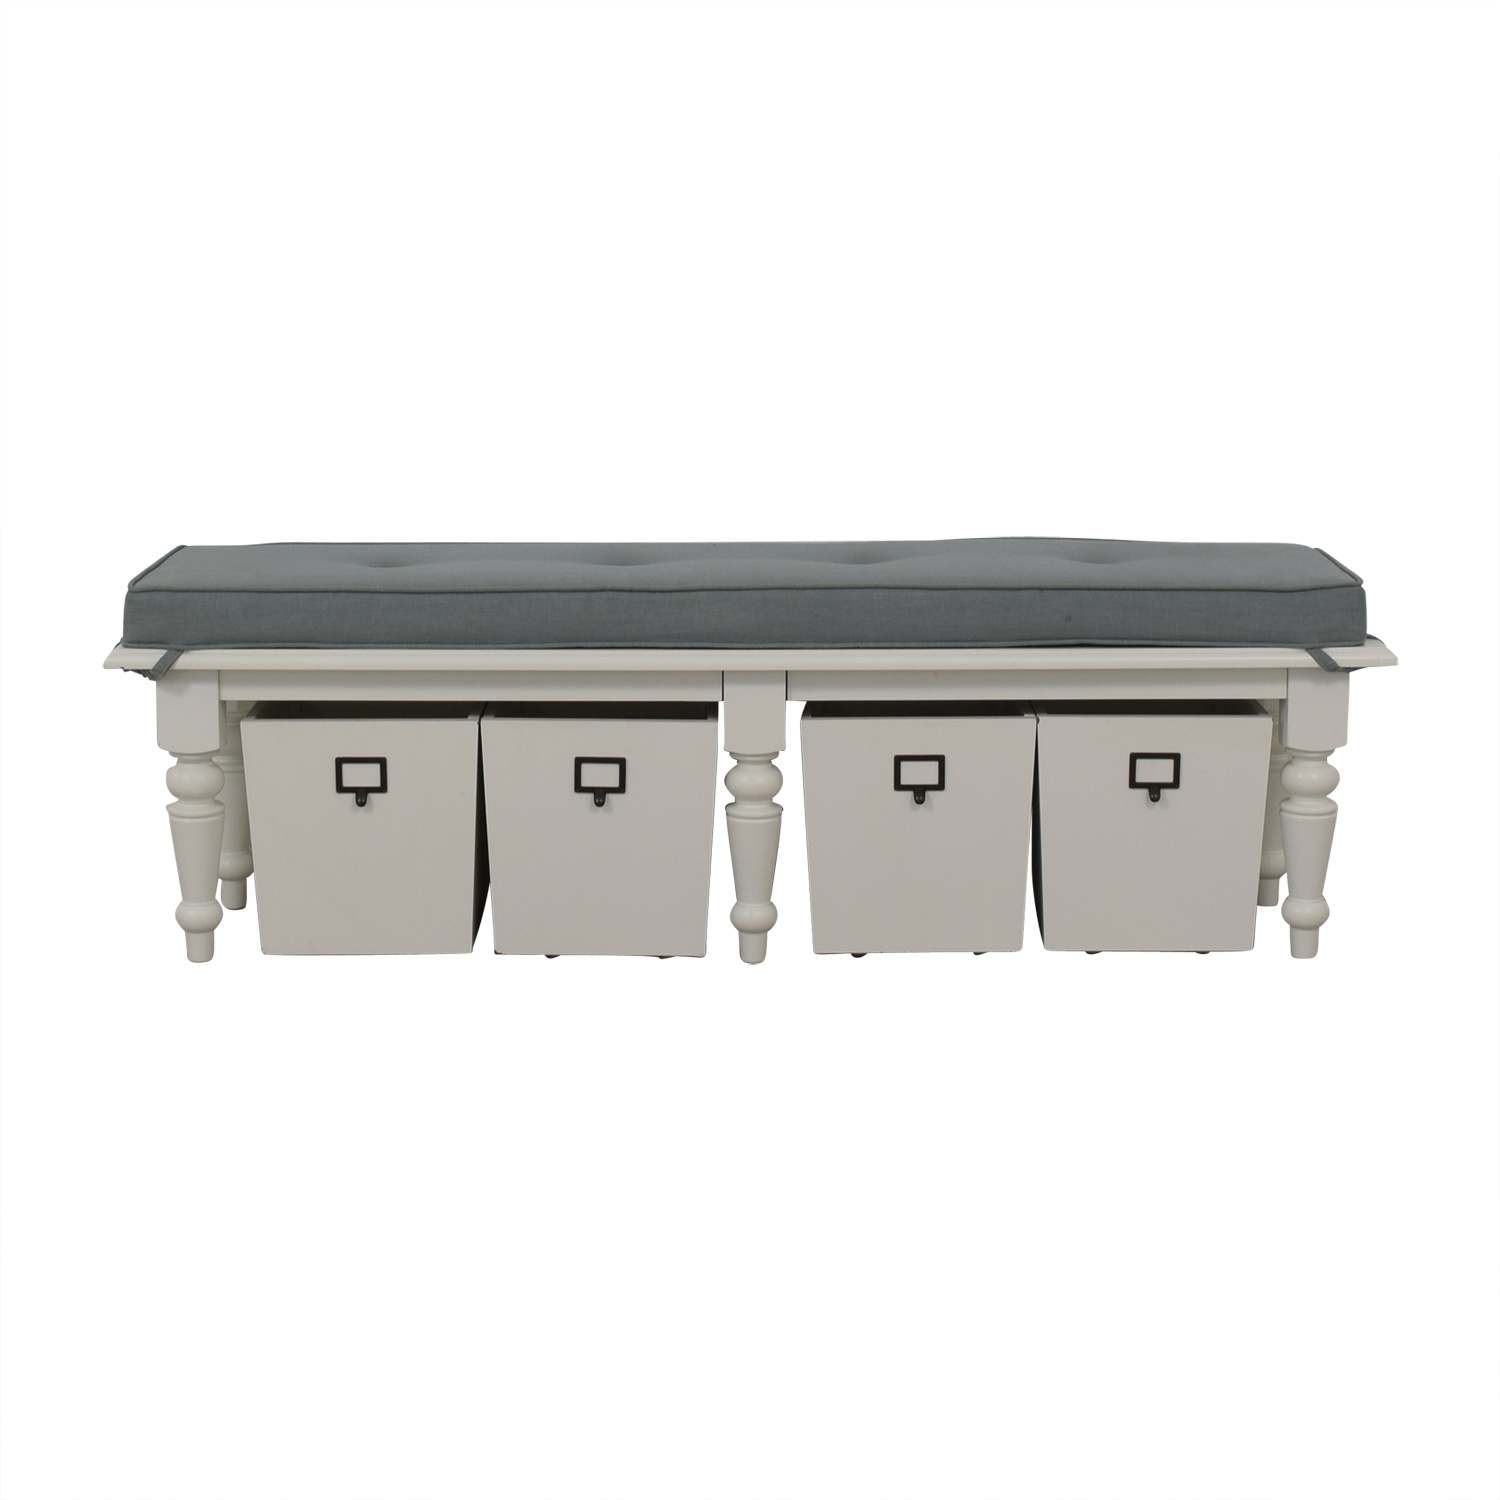 shop Home Goods Grey Upholstered and White Bench with Four Storage Boxes Home Goods Benches